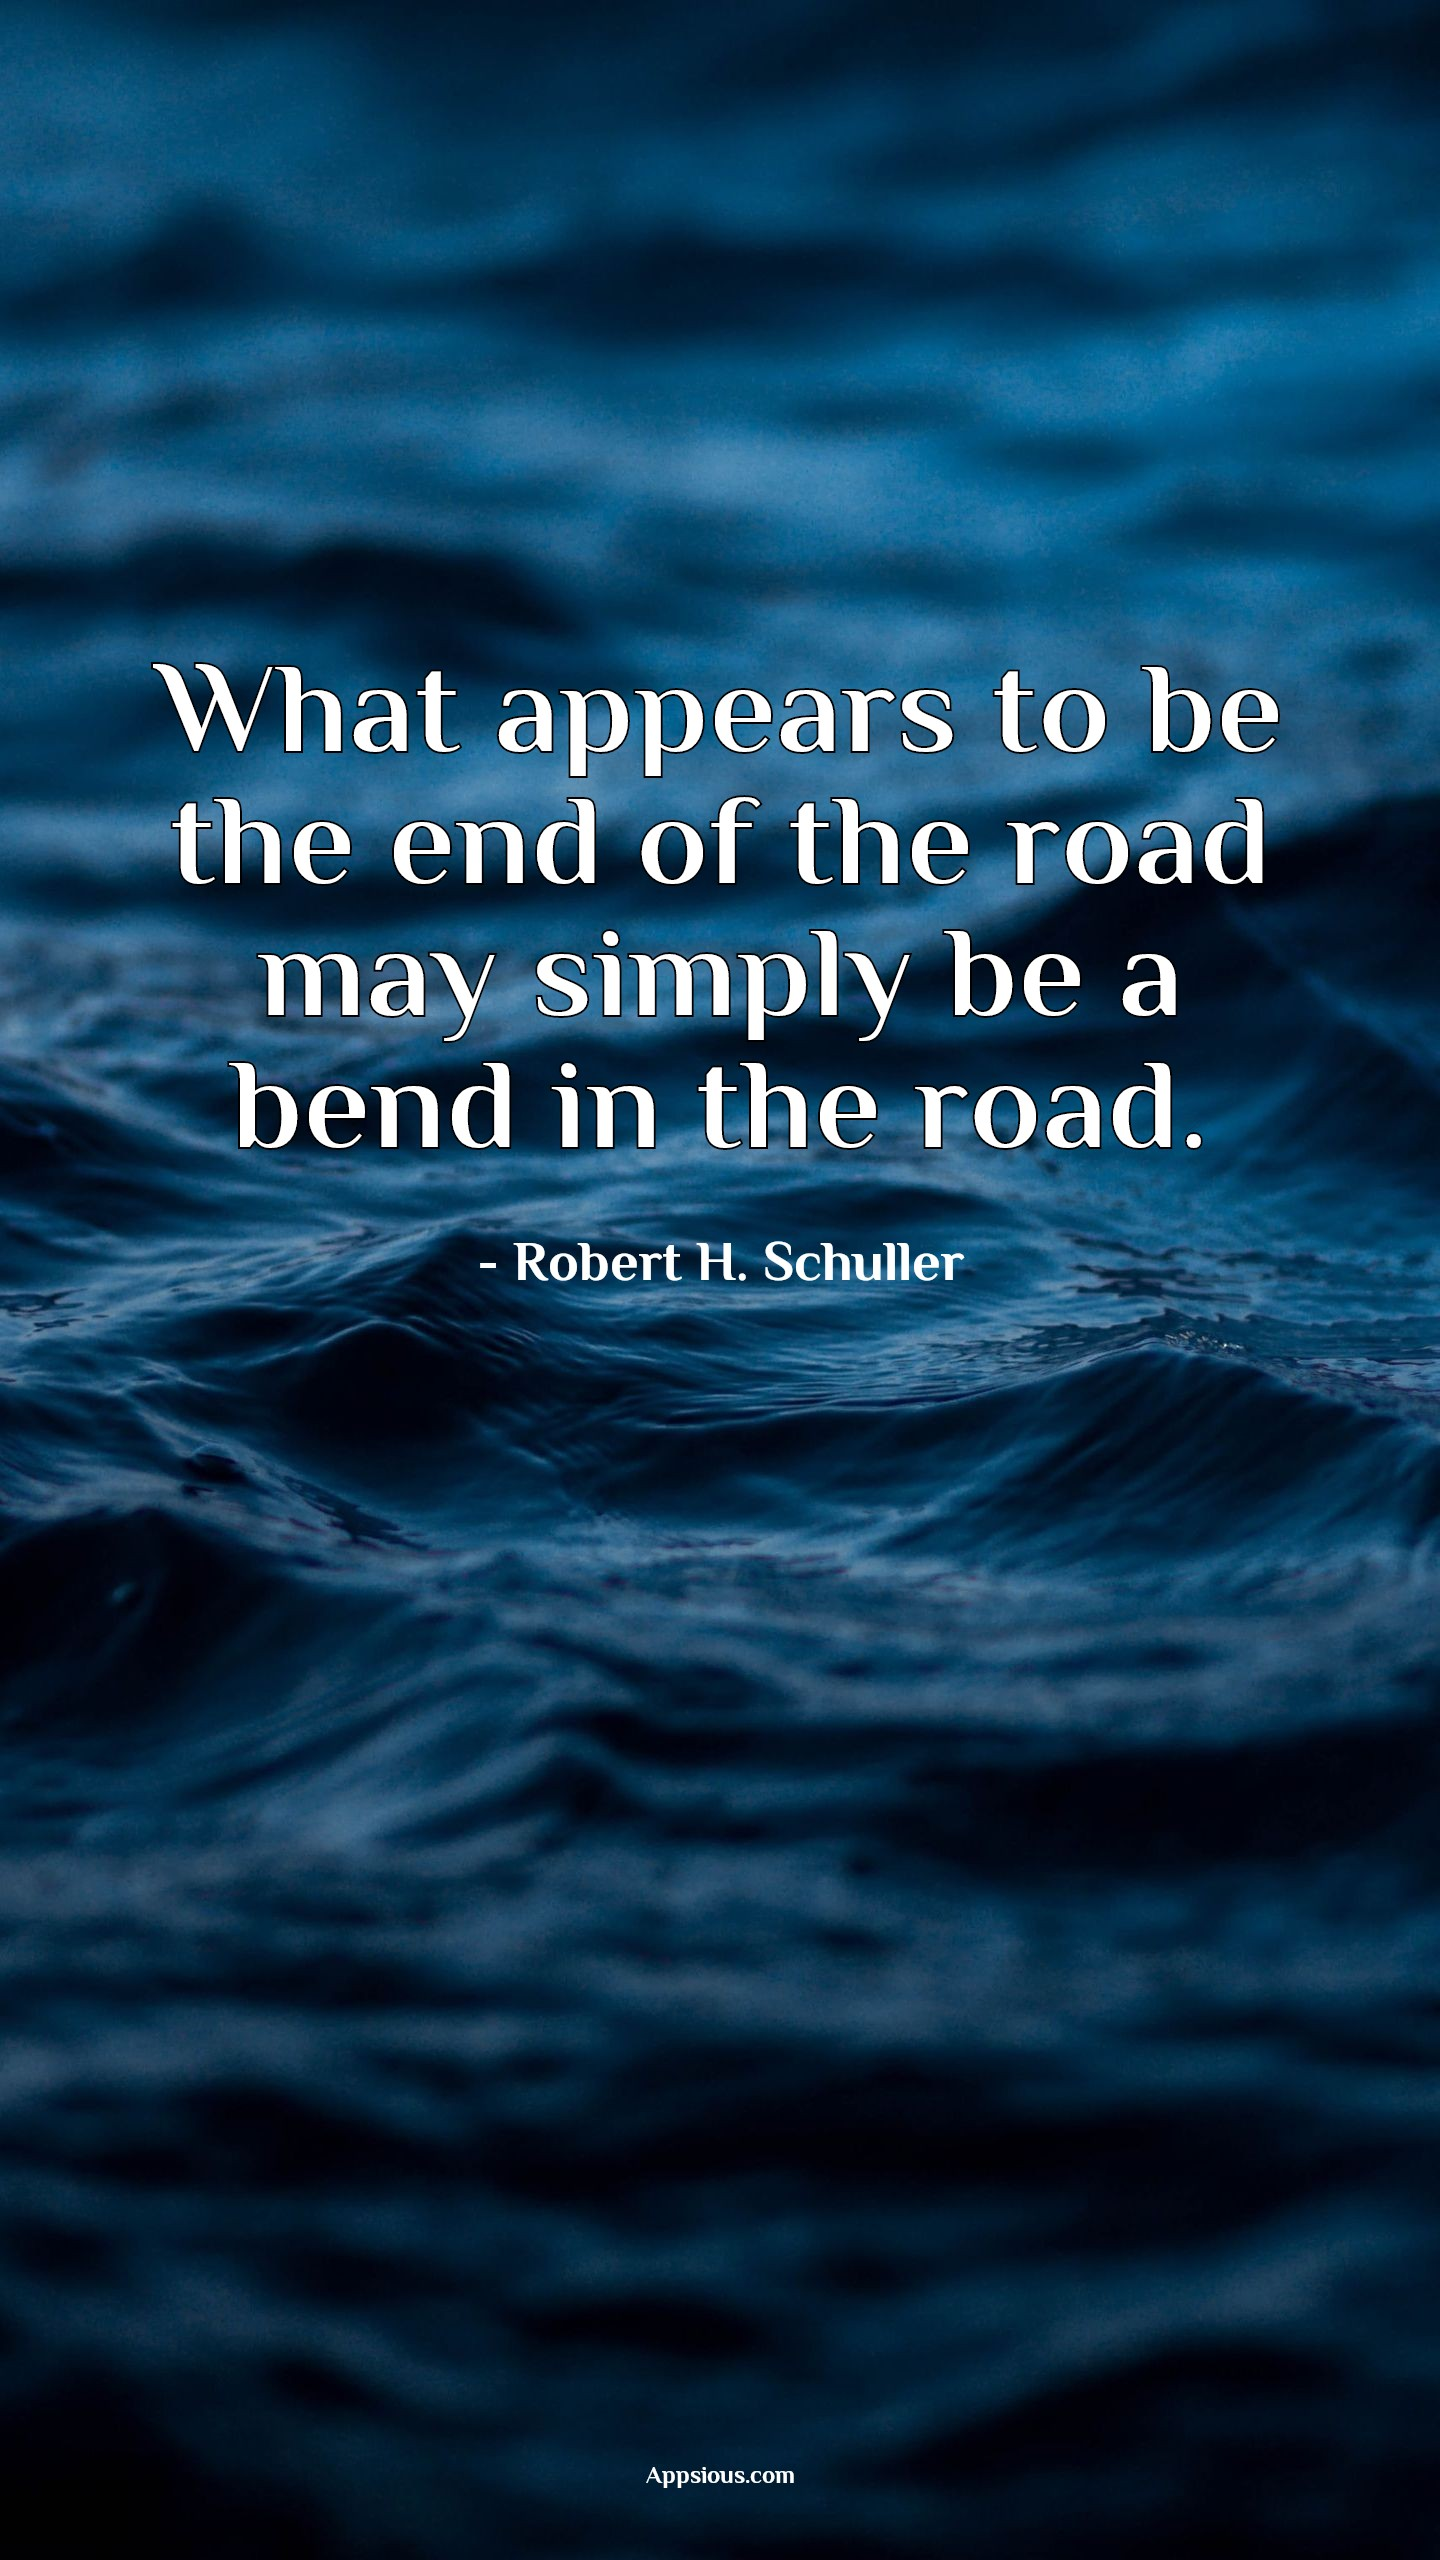 What appears to be the end of the road may simply be a bend in the road.